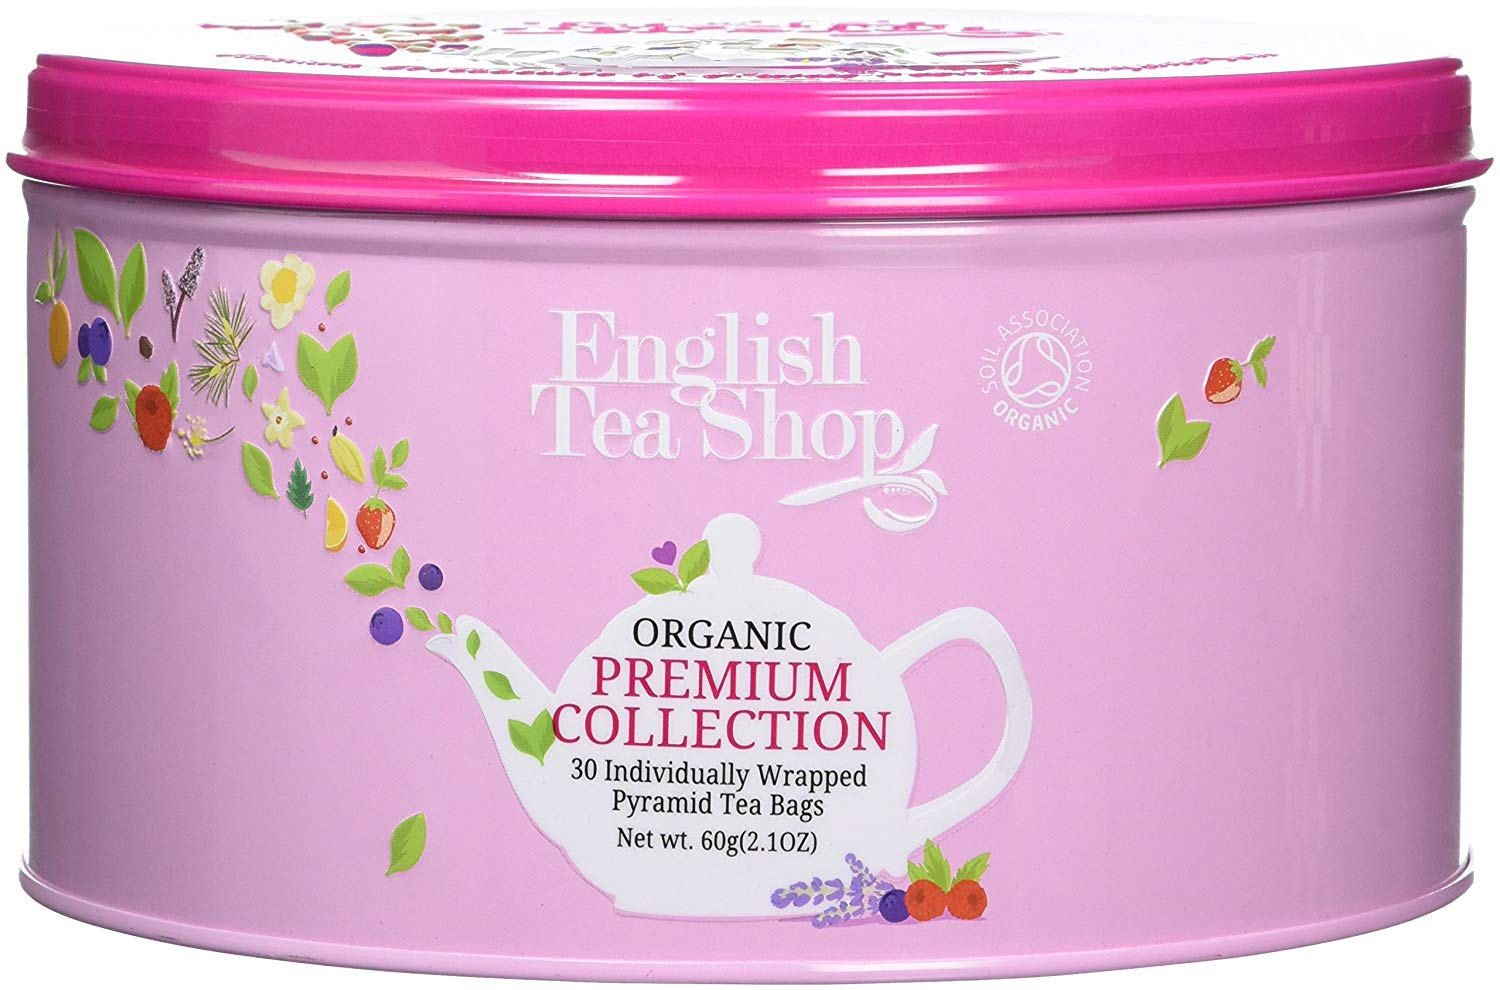 English Tea Shop Round Assortment Pink Nylon Pyramid Tin 30 ct